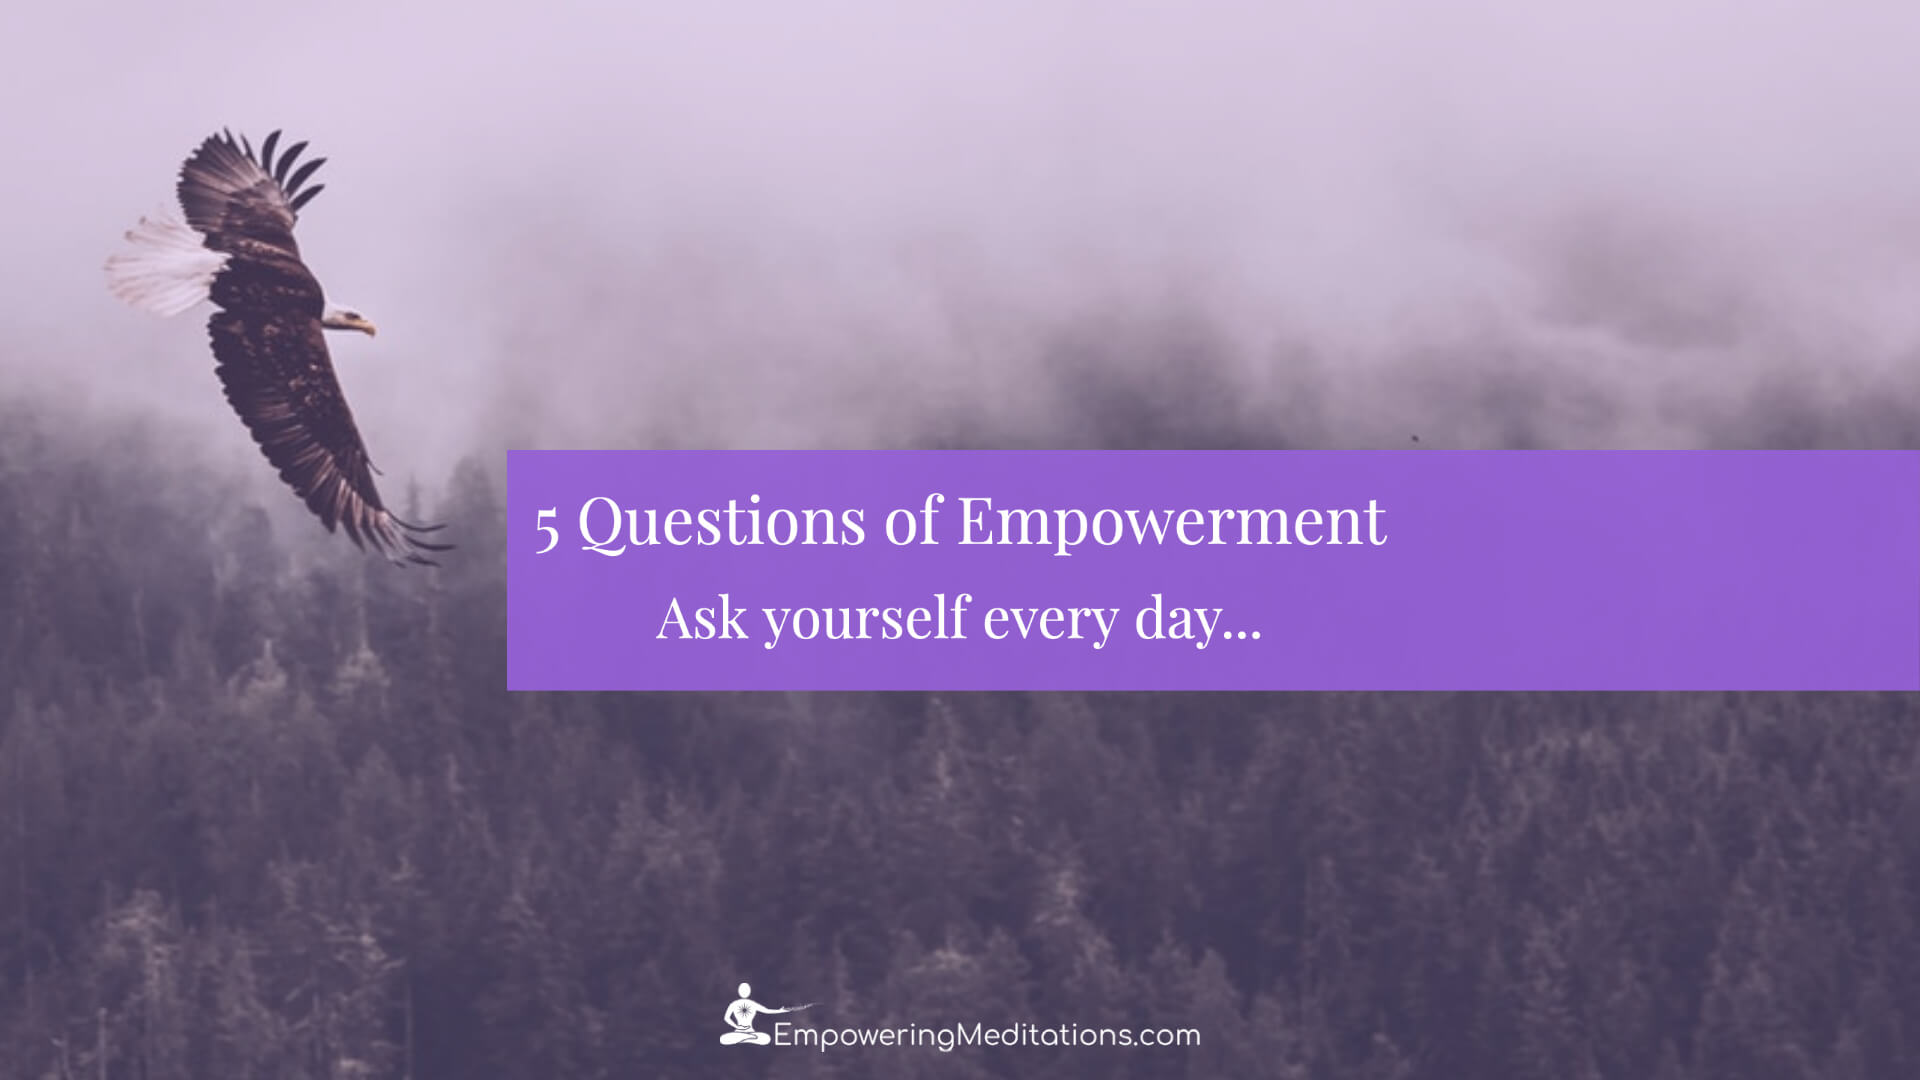 Blog - 5 Questions of Empowerment - Page